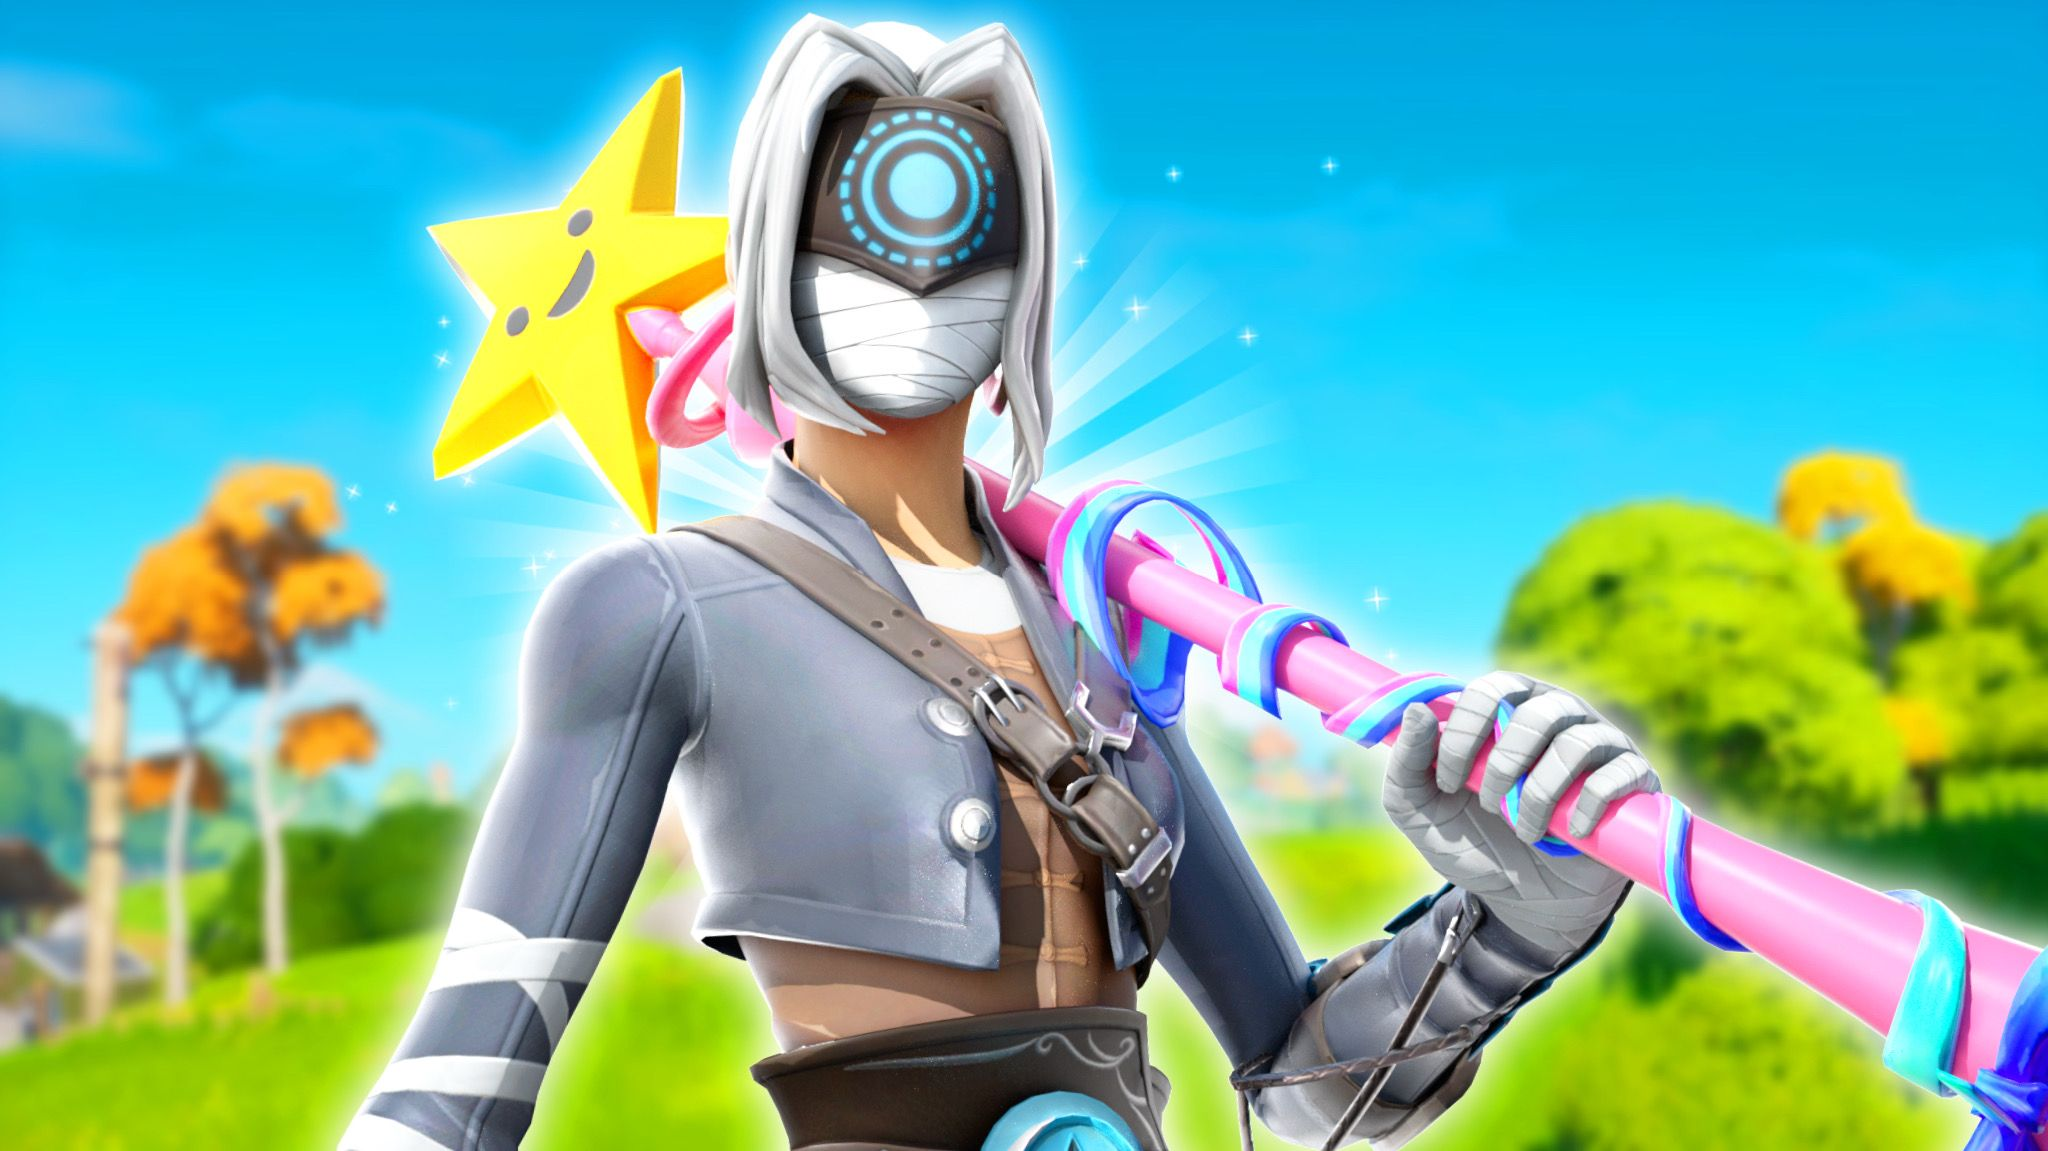 Focus Pfp Art Made By Silo Plz Like And Follow Ad Fortnite Bye Freetoedit Best Gaming Wallpapers Gamer Pics Gaming Wallpapers